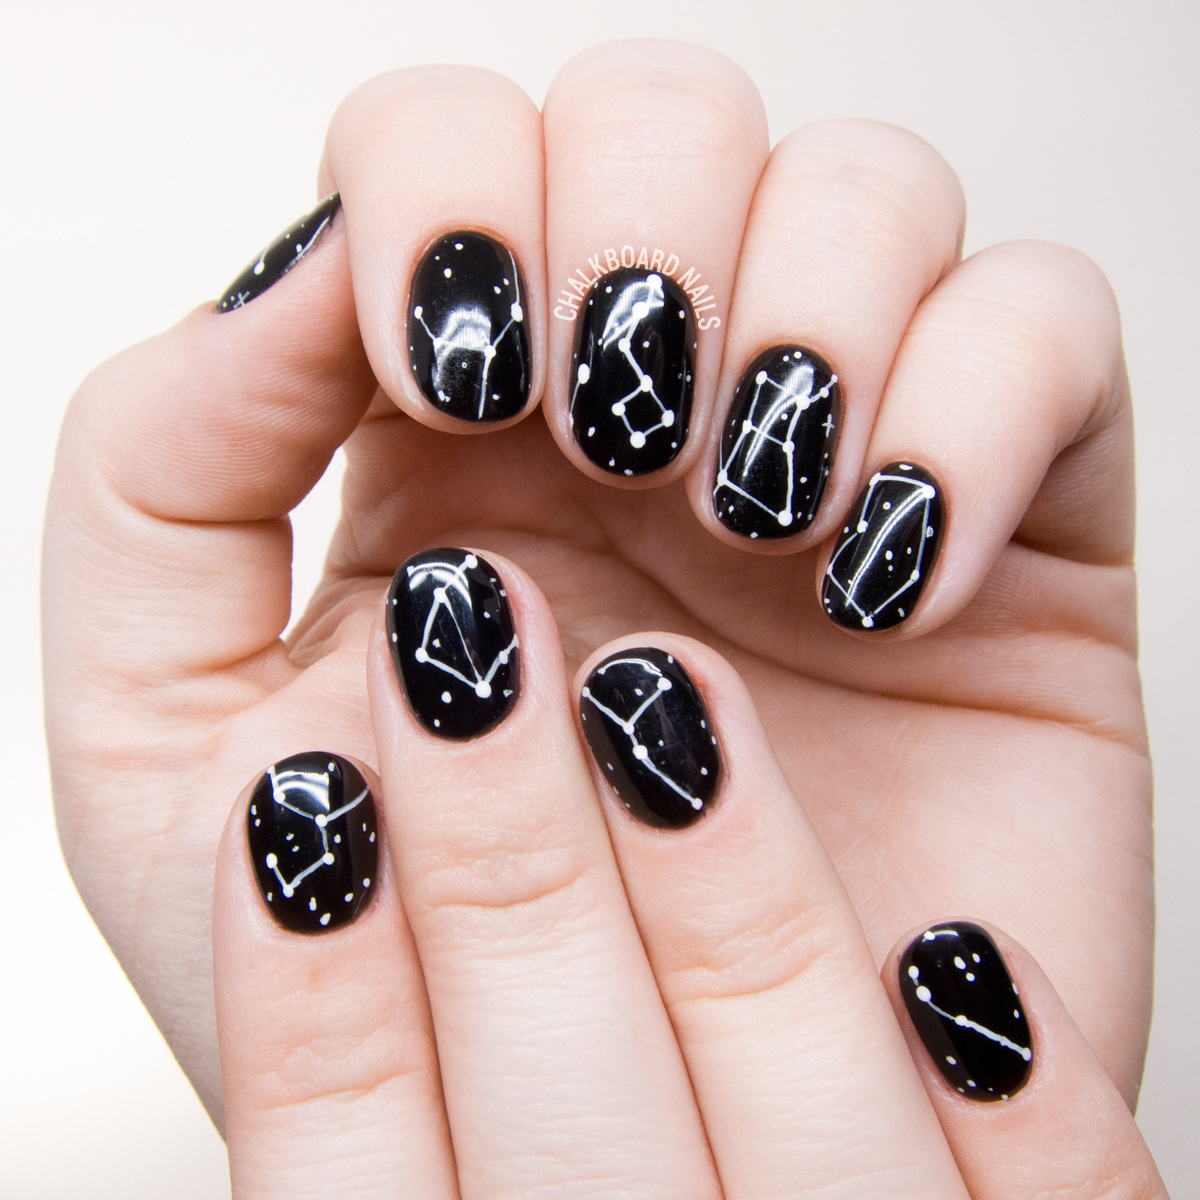 Pics Of Nail Art: Simple Constellation Nail Art